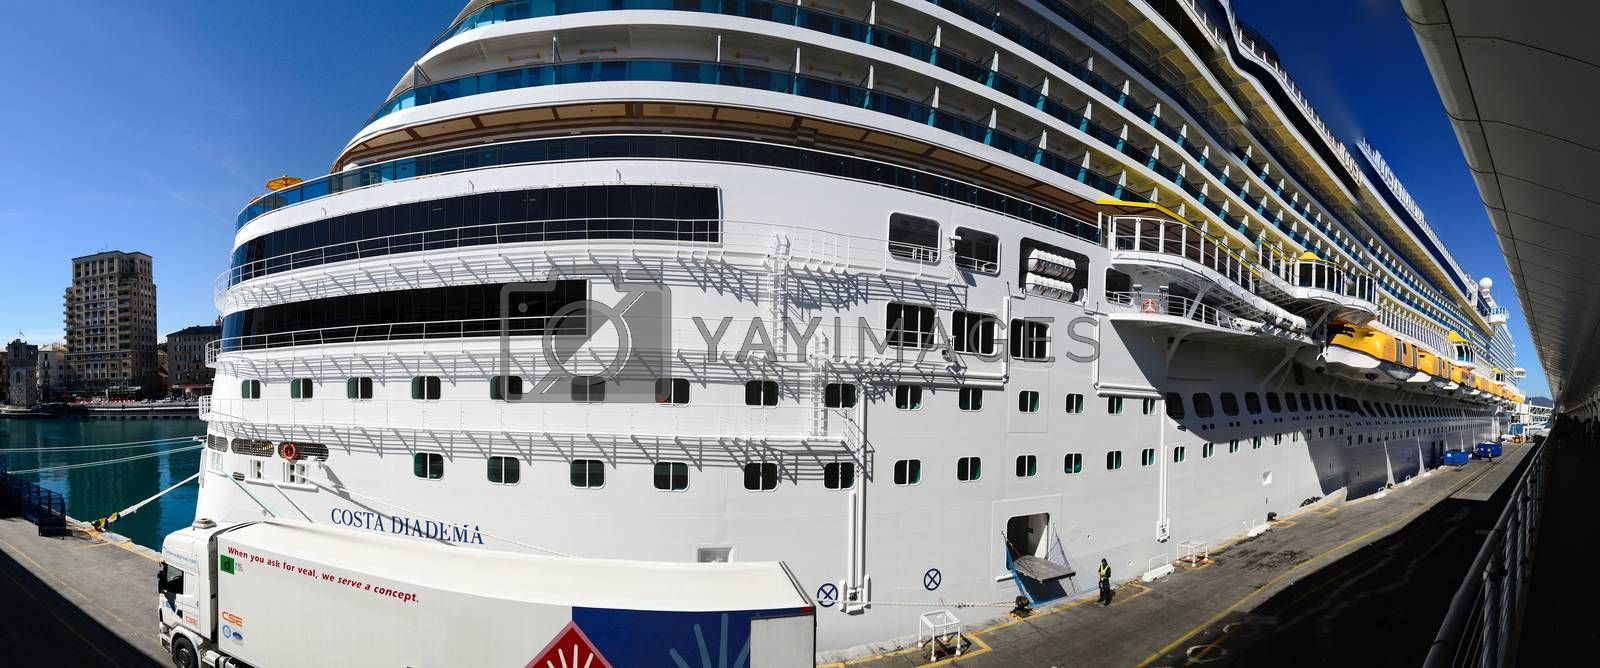 huge cruise ship in the harbor panorama view